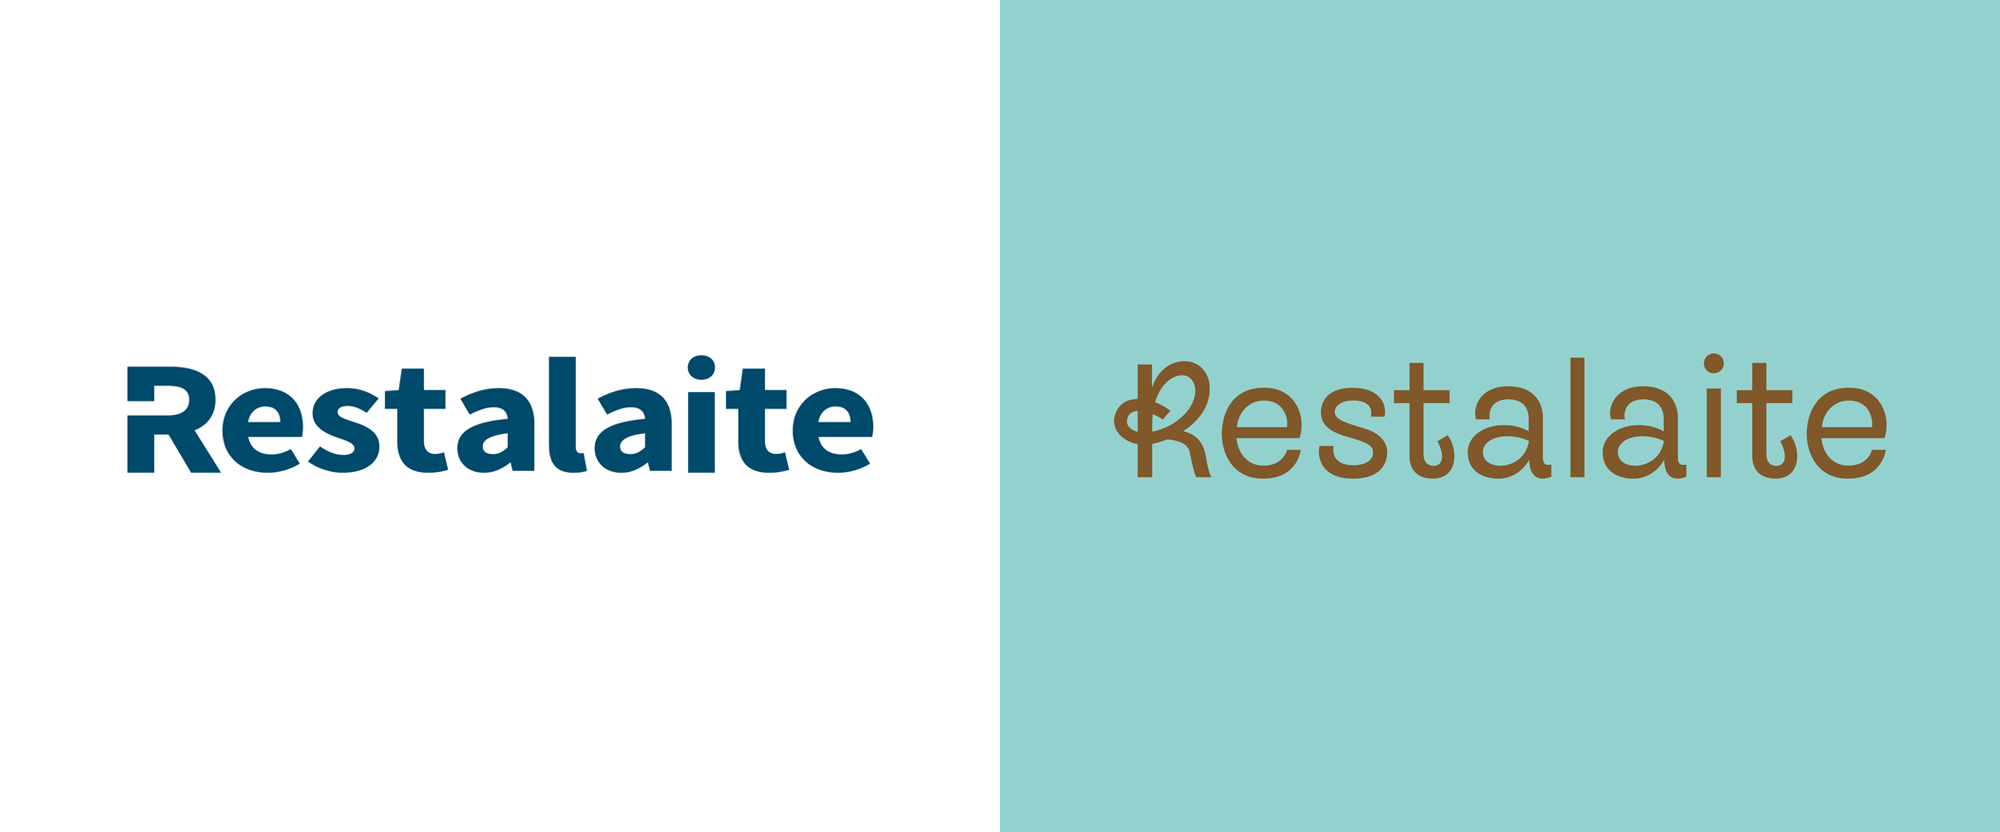 New Logo and Identity for Restalaite by Motley